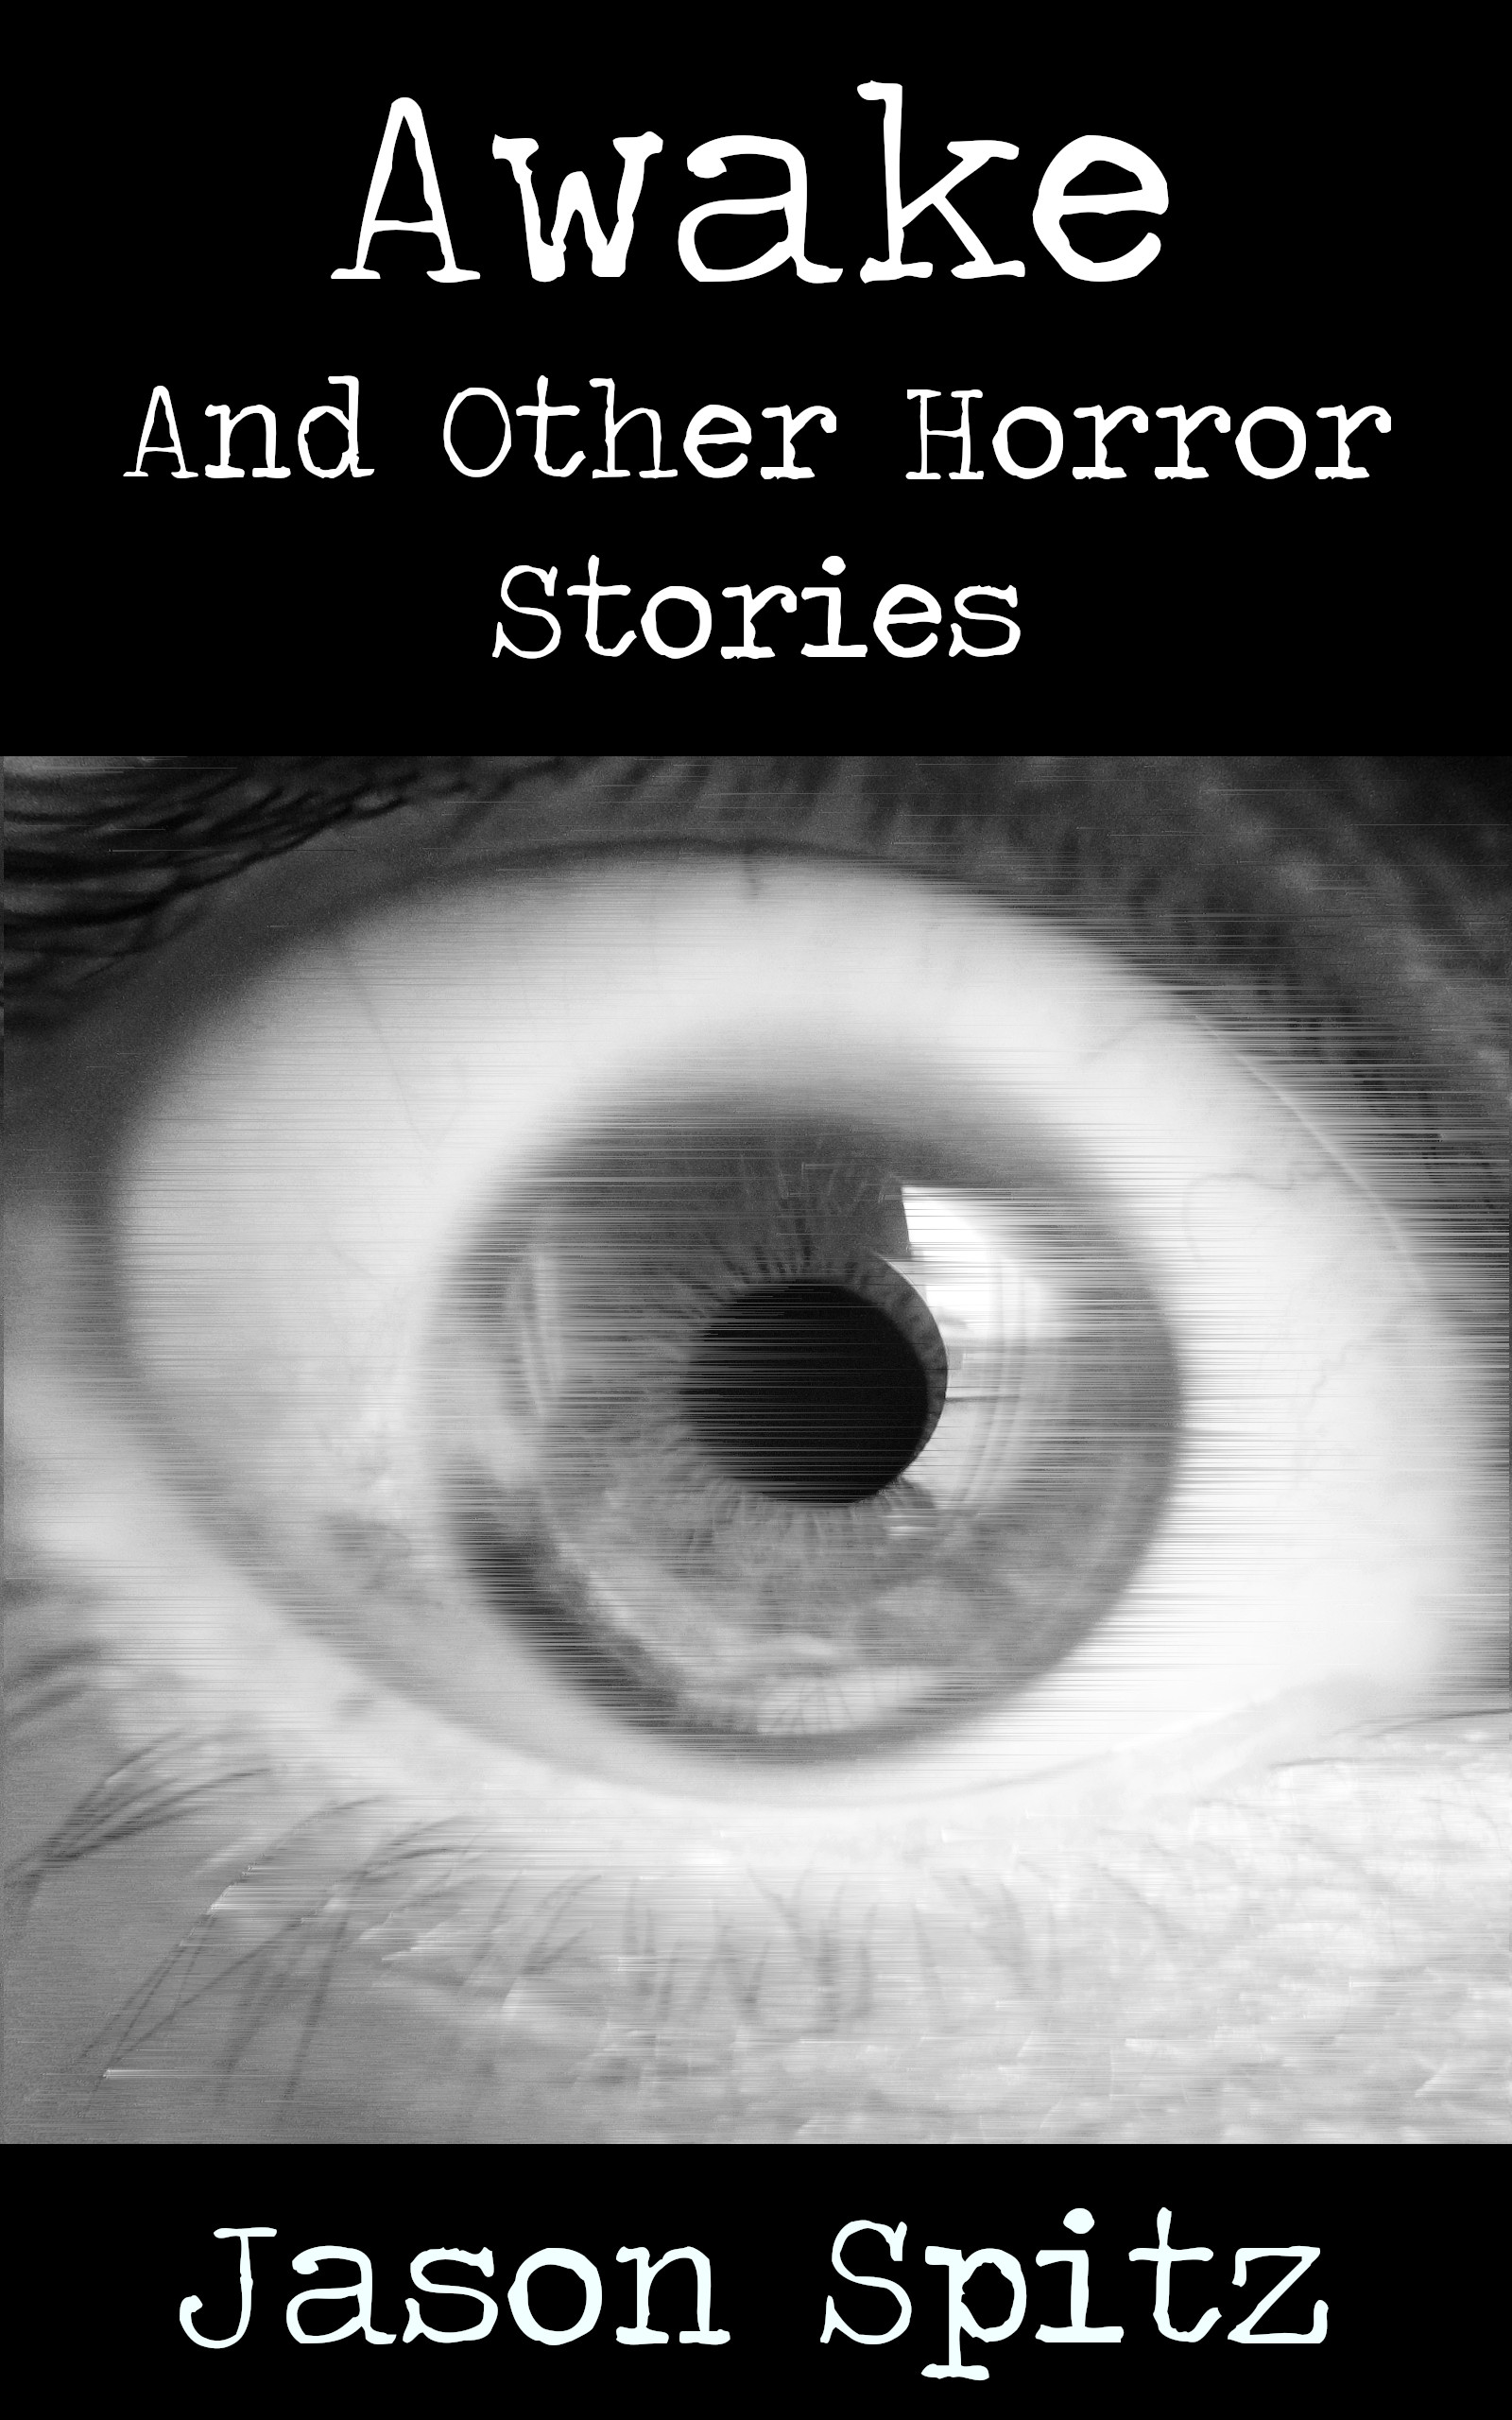 Awake and Other Horror Stories